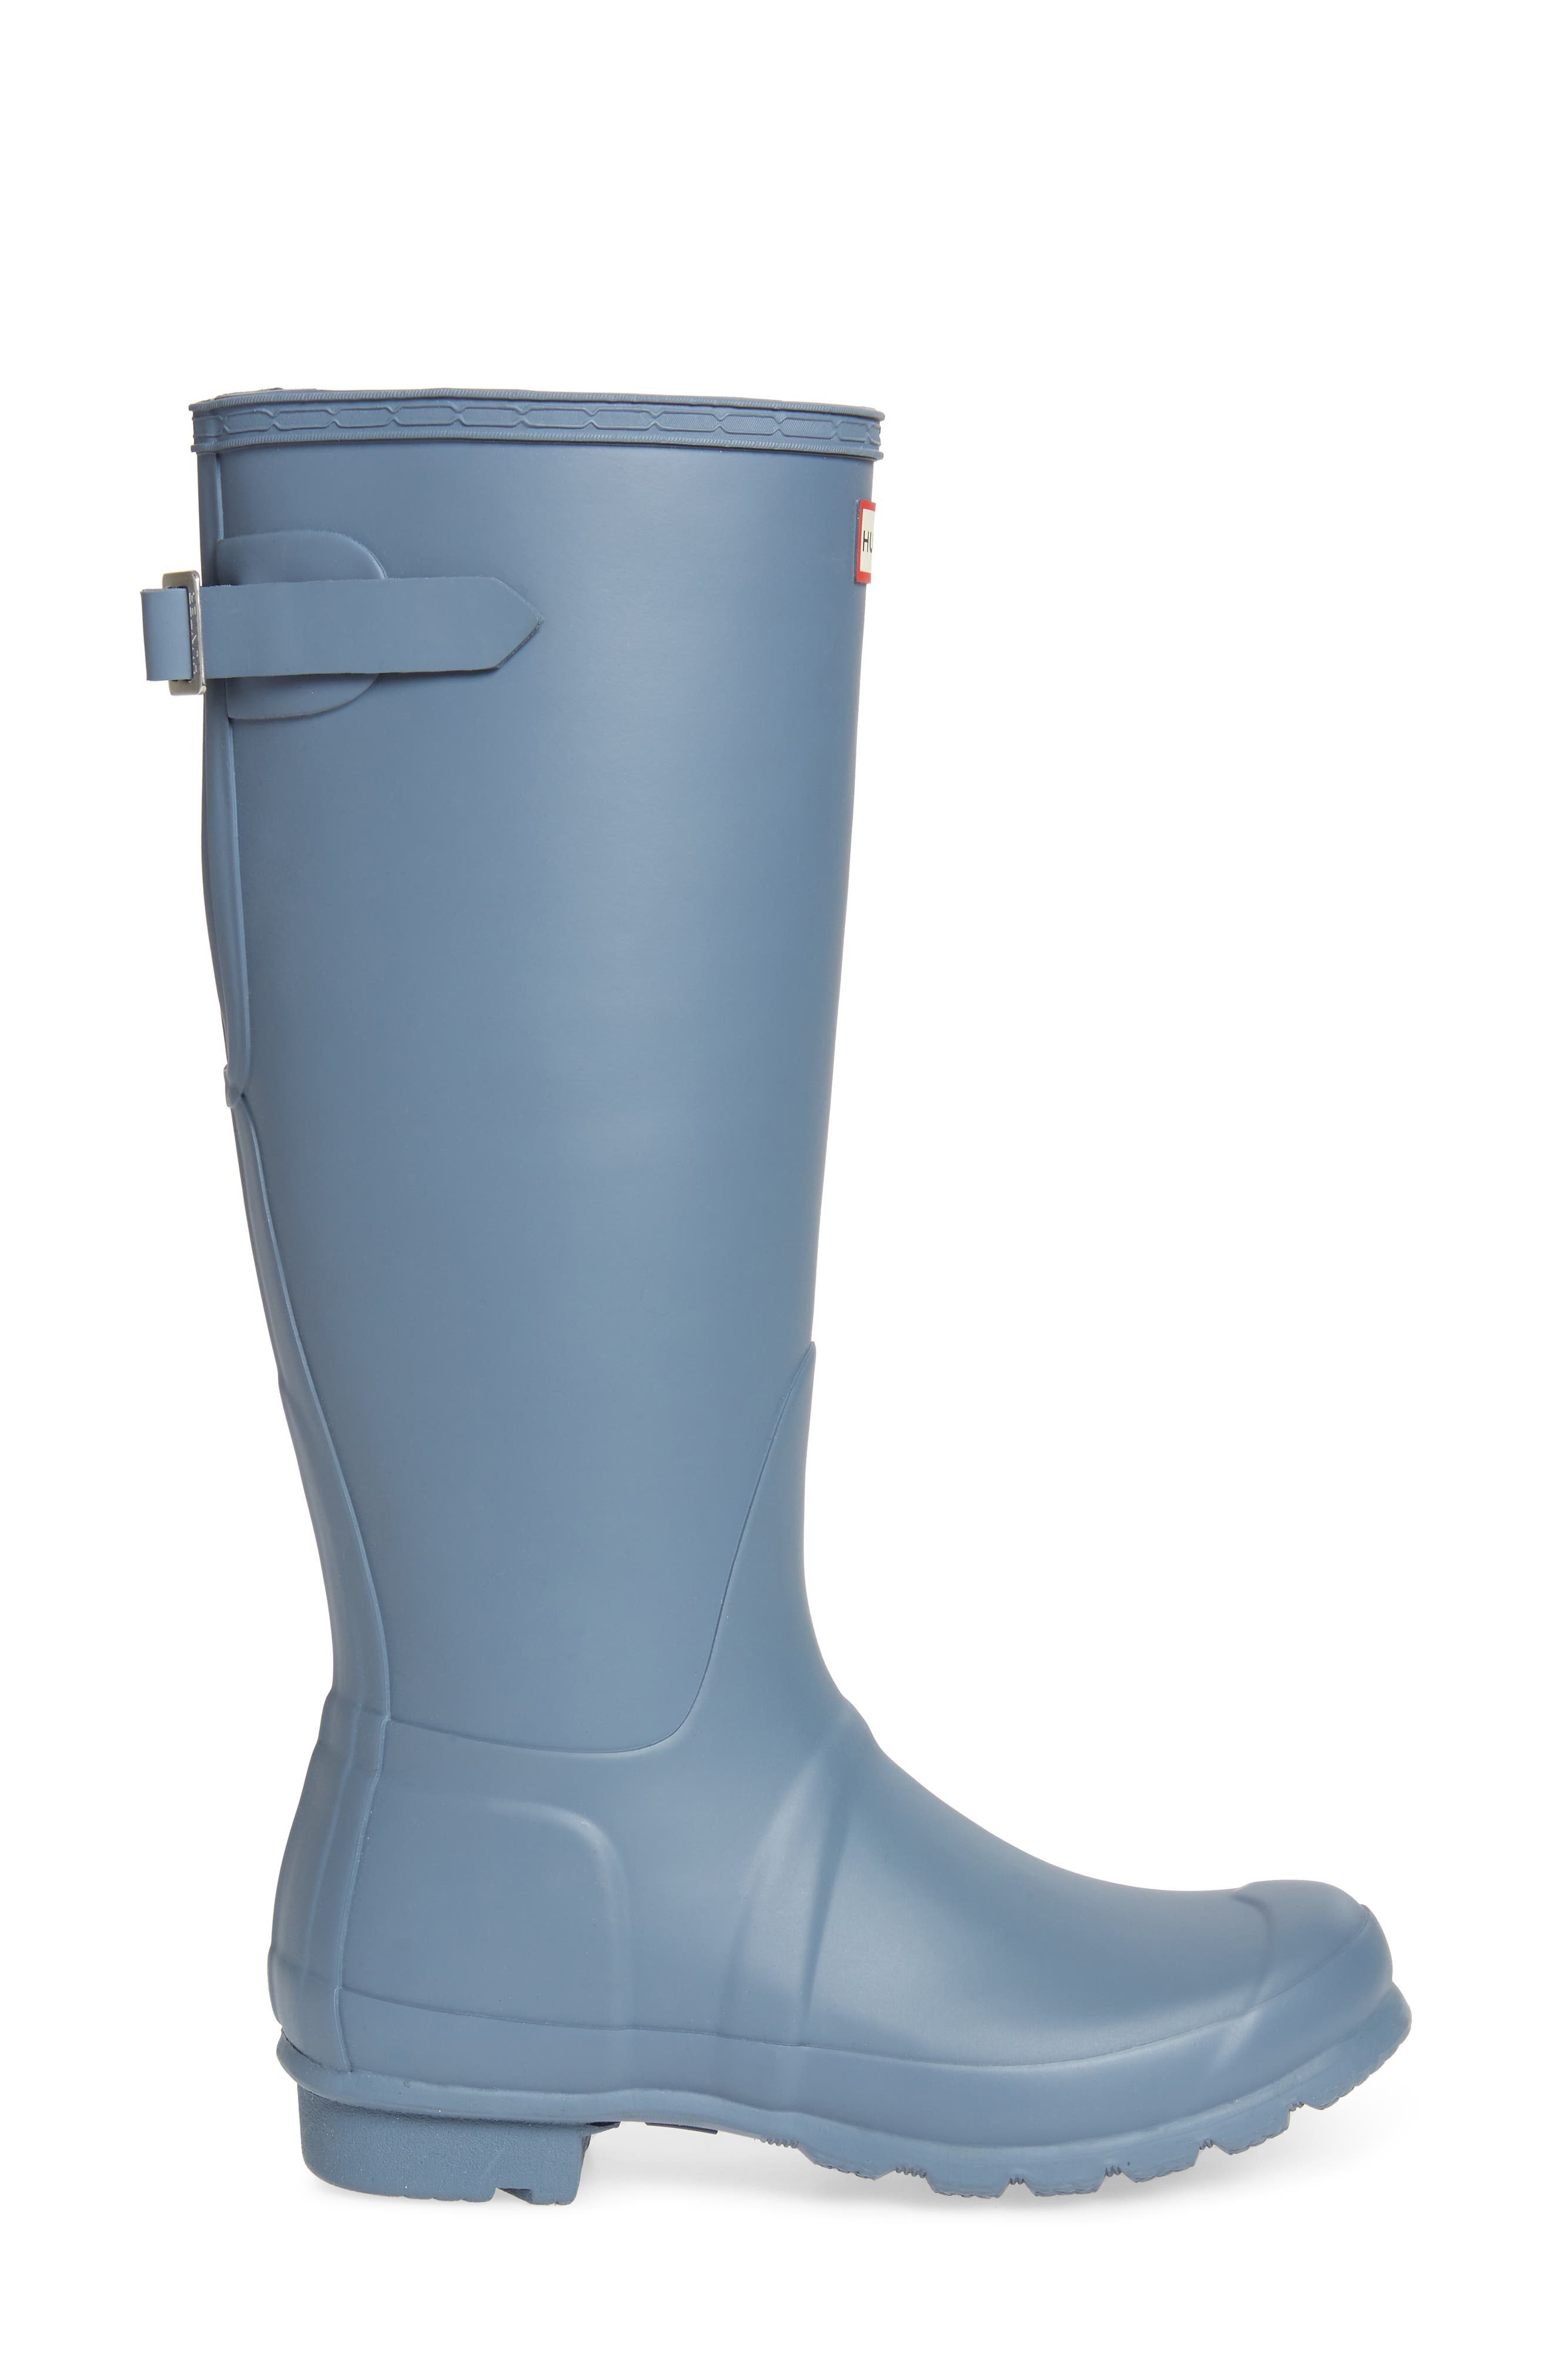 Original Tall Adjustable Back Waterproof Rain Boot,                             Alternate thumbnail 3, color,                             GULL GREY MATTE